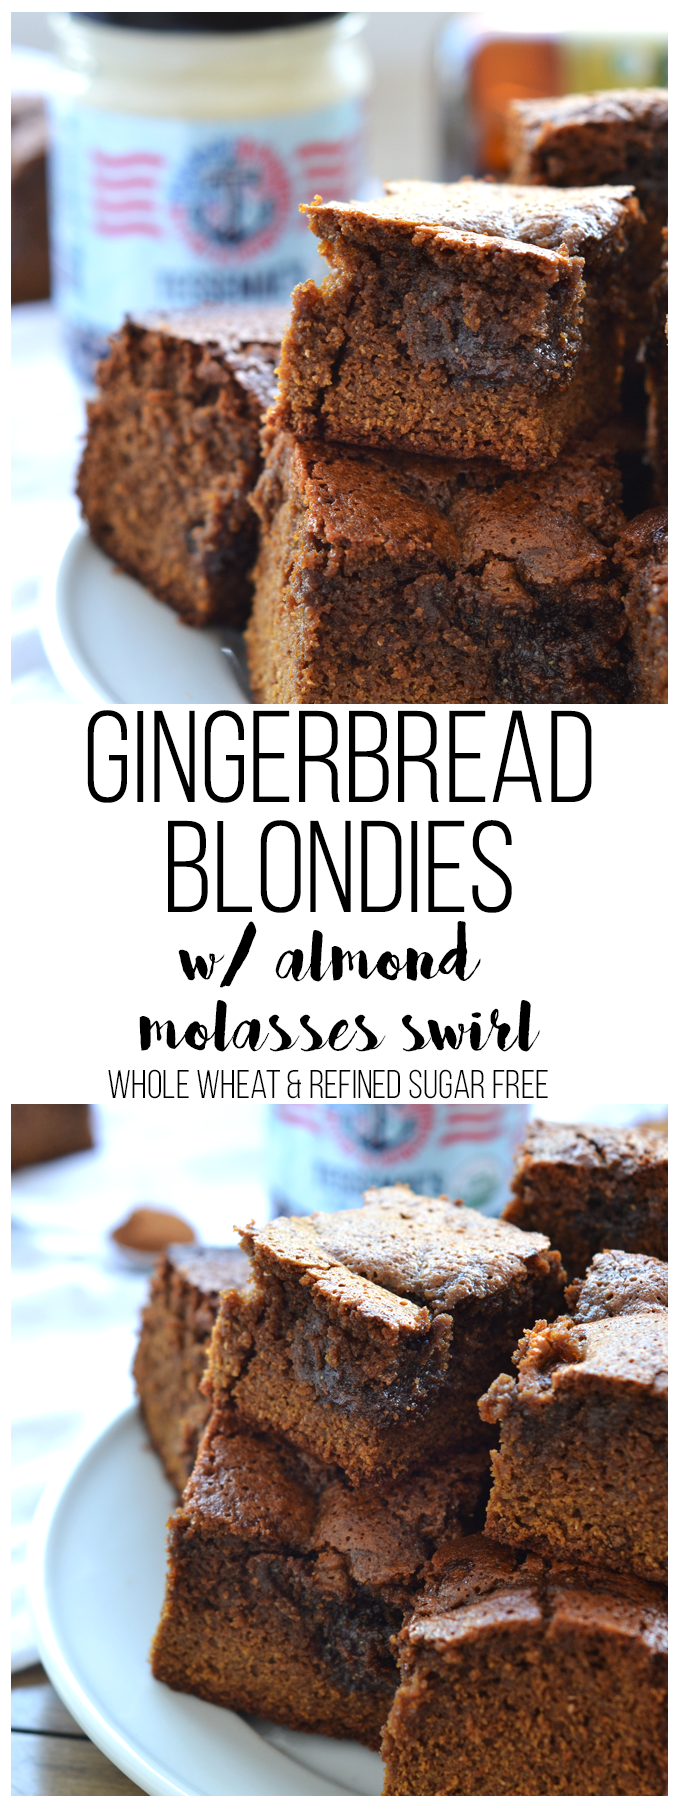 These Gingerbread Blondies had a creamy almond & molasses swirl, are whole wheat and refined sugar free and use super clean Tessemae's Mayonnaise as their fat source!